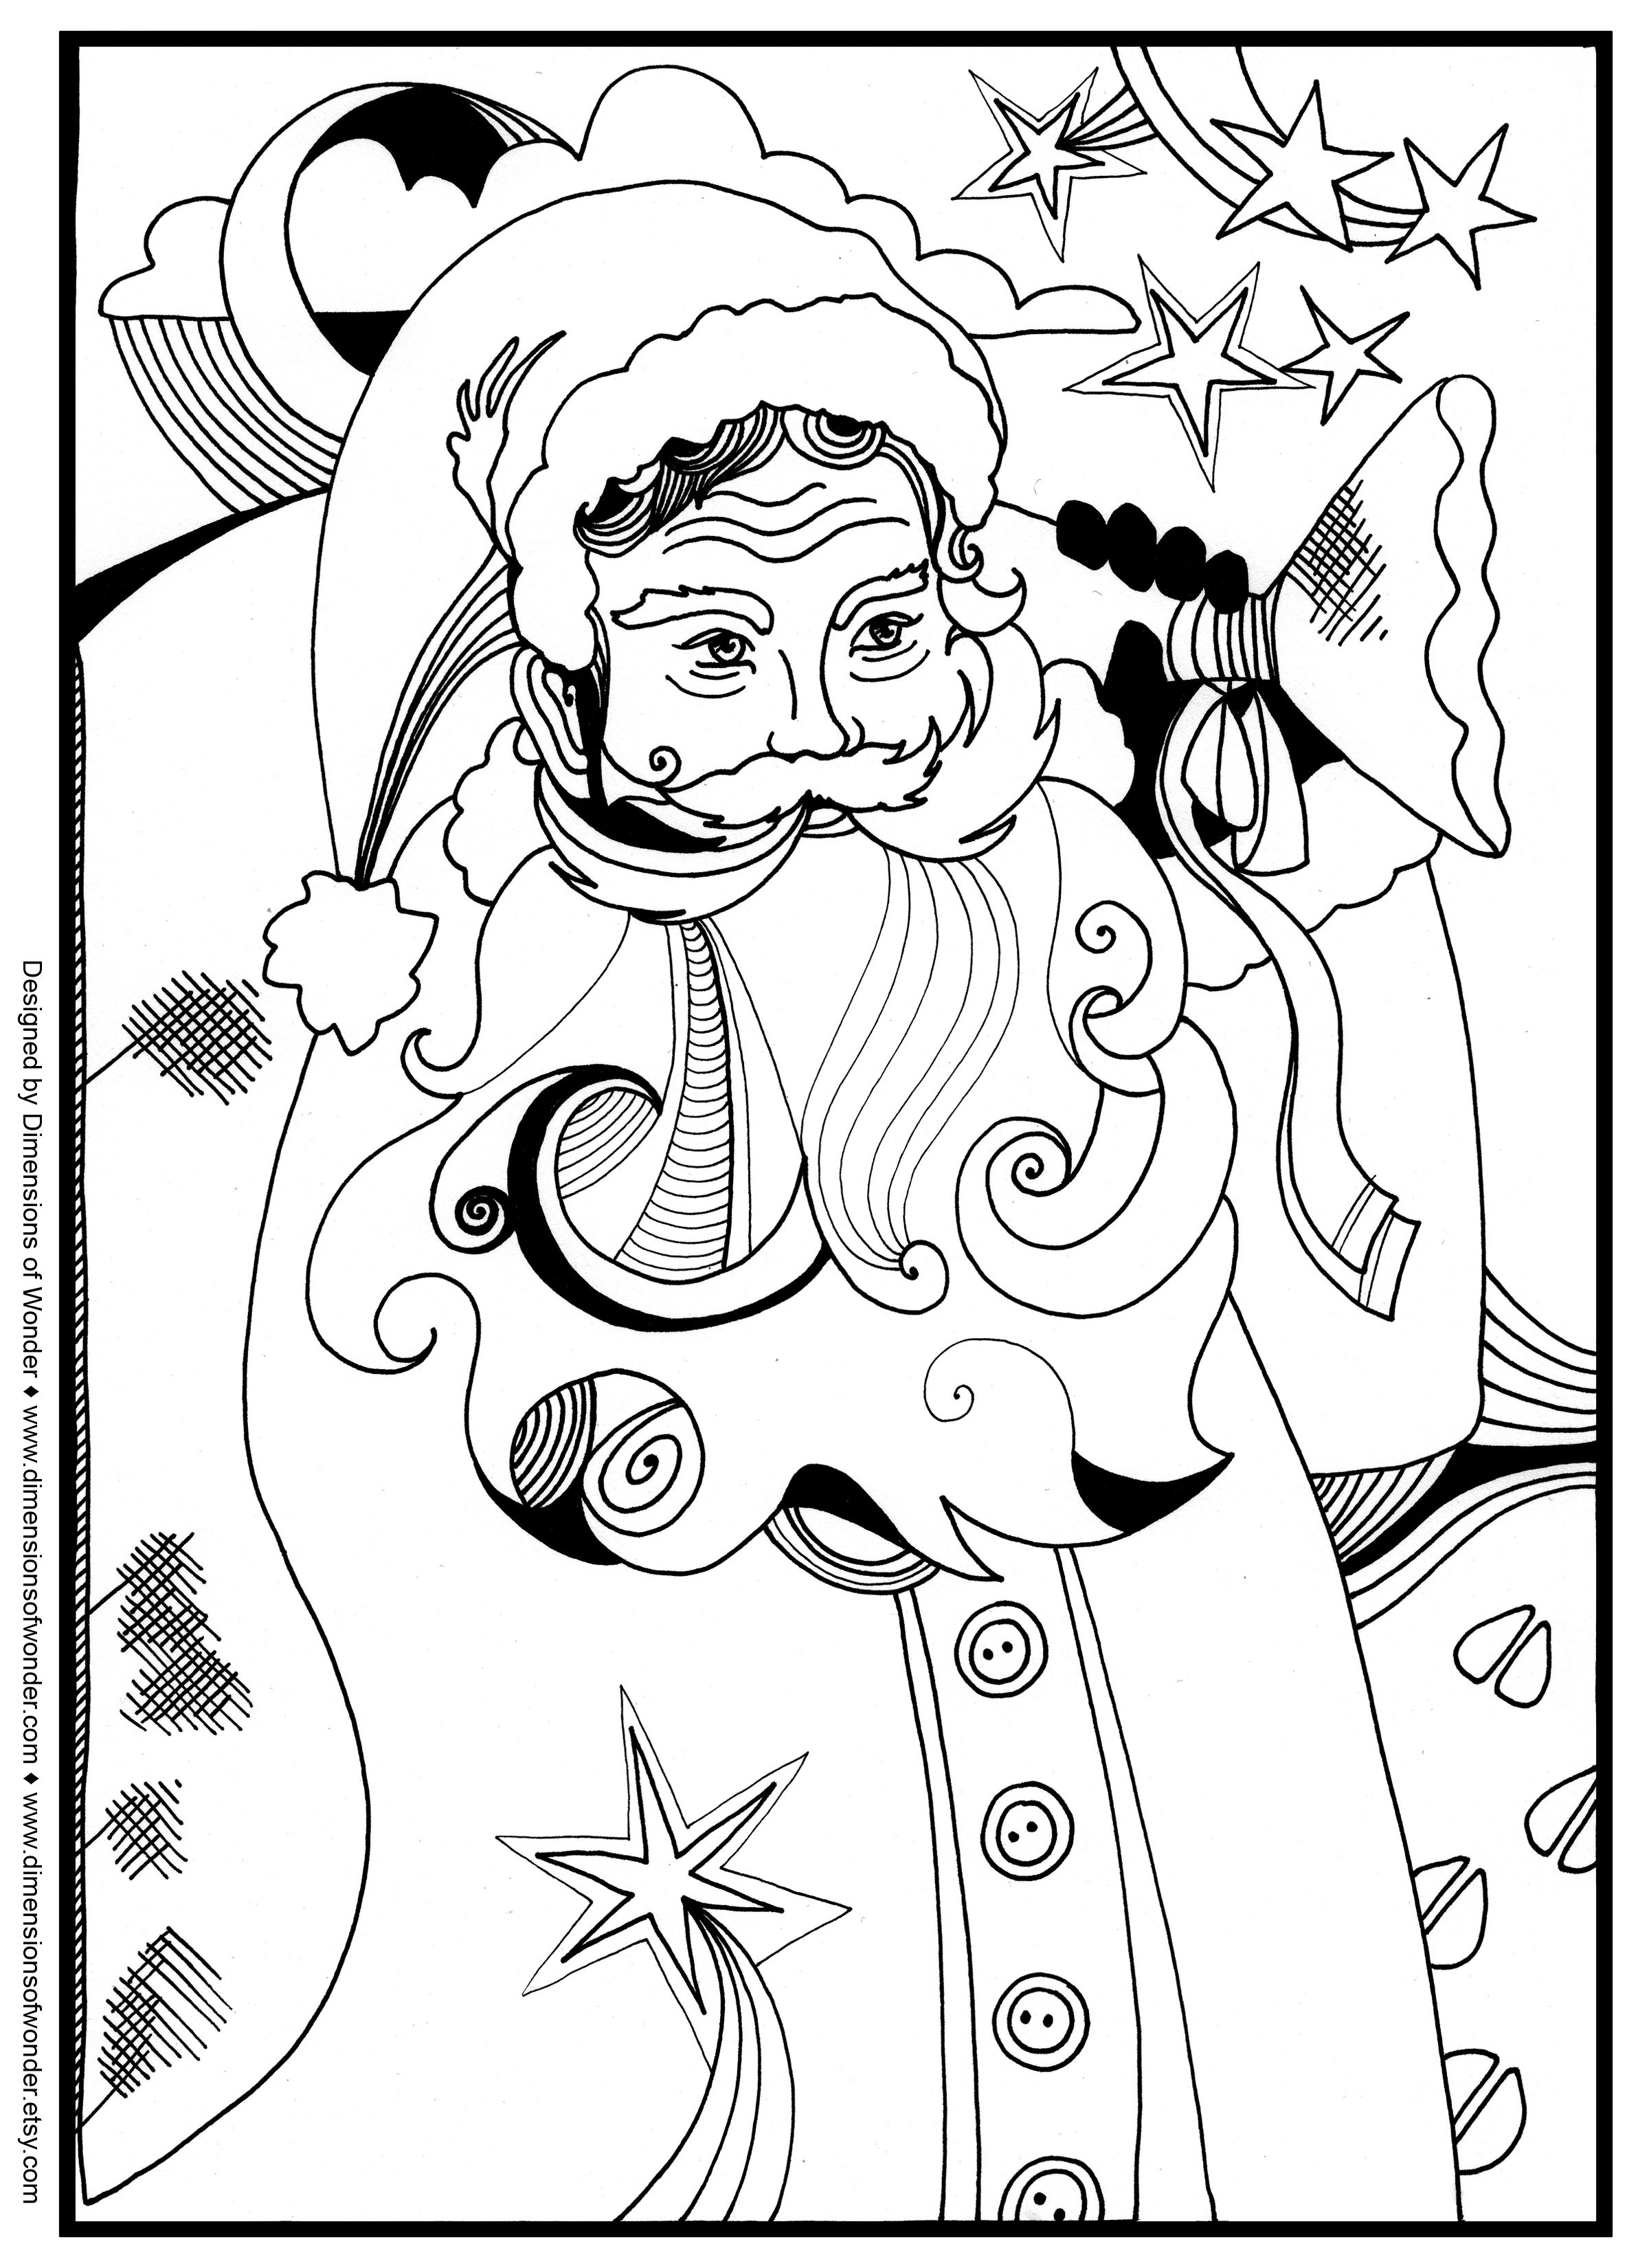 Santa Coloring Pages Free Printable With Christmas Around The World Kidsfreecoloring Net